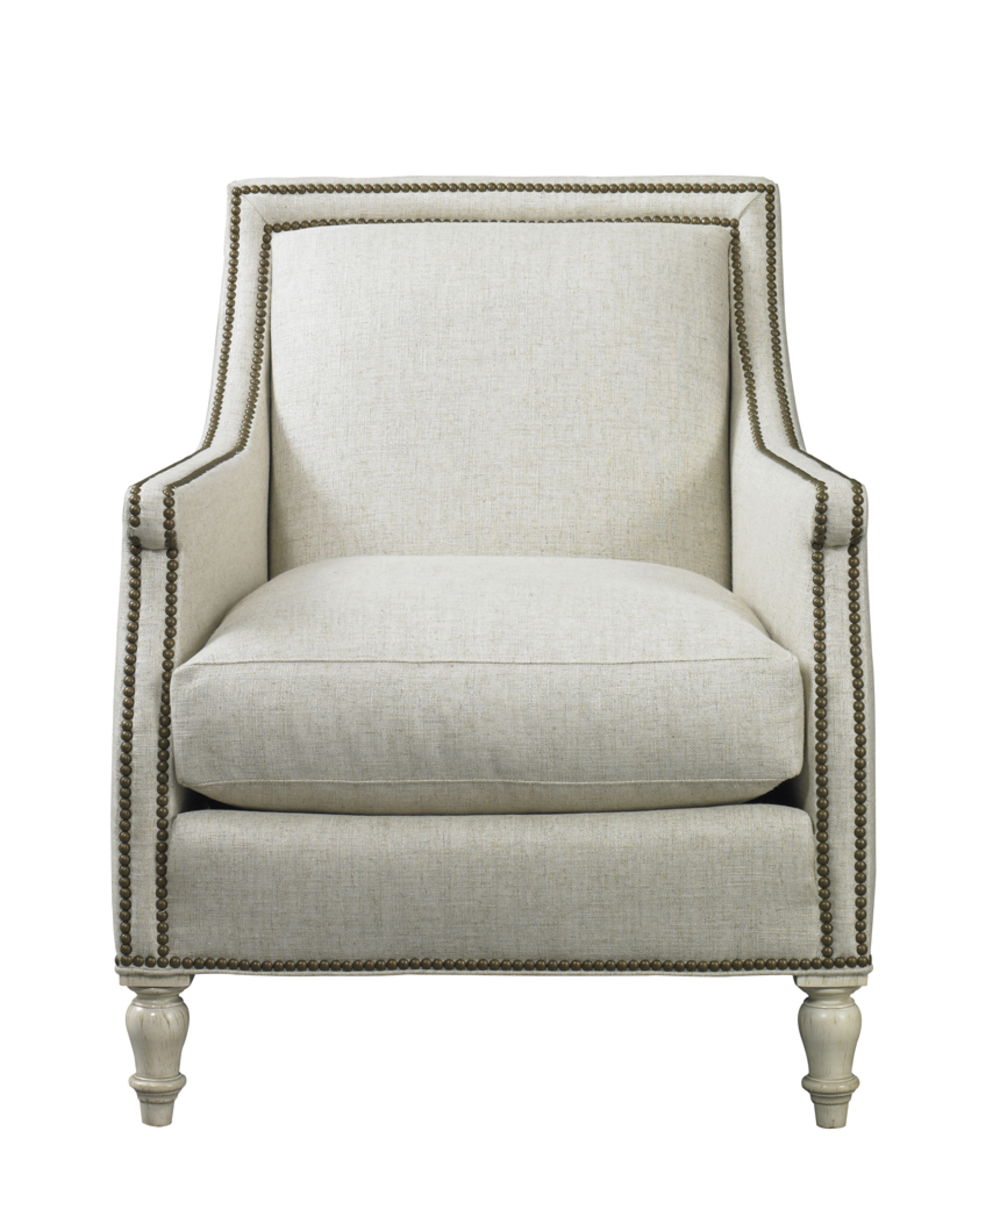 Mr. and Mrs. Howard by Sherrill Furniture - Deans Chair